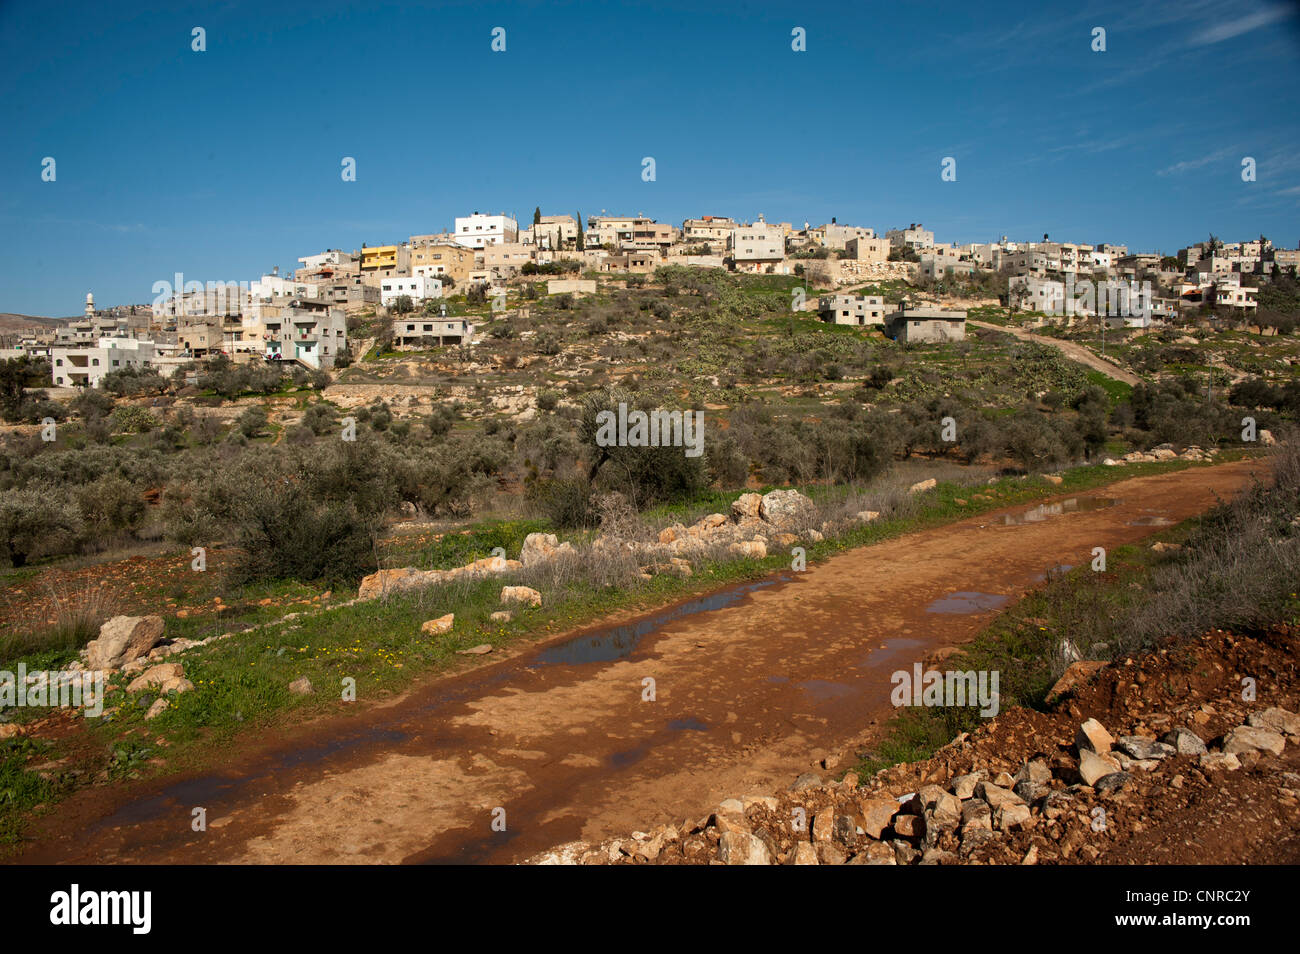 Palestinian villages under repression., One of the village around Nbalus. - Stock Image